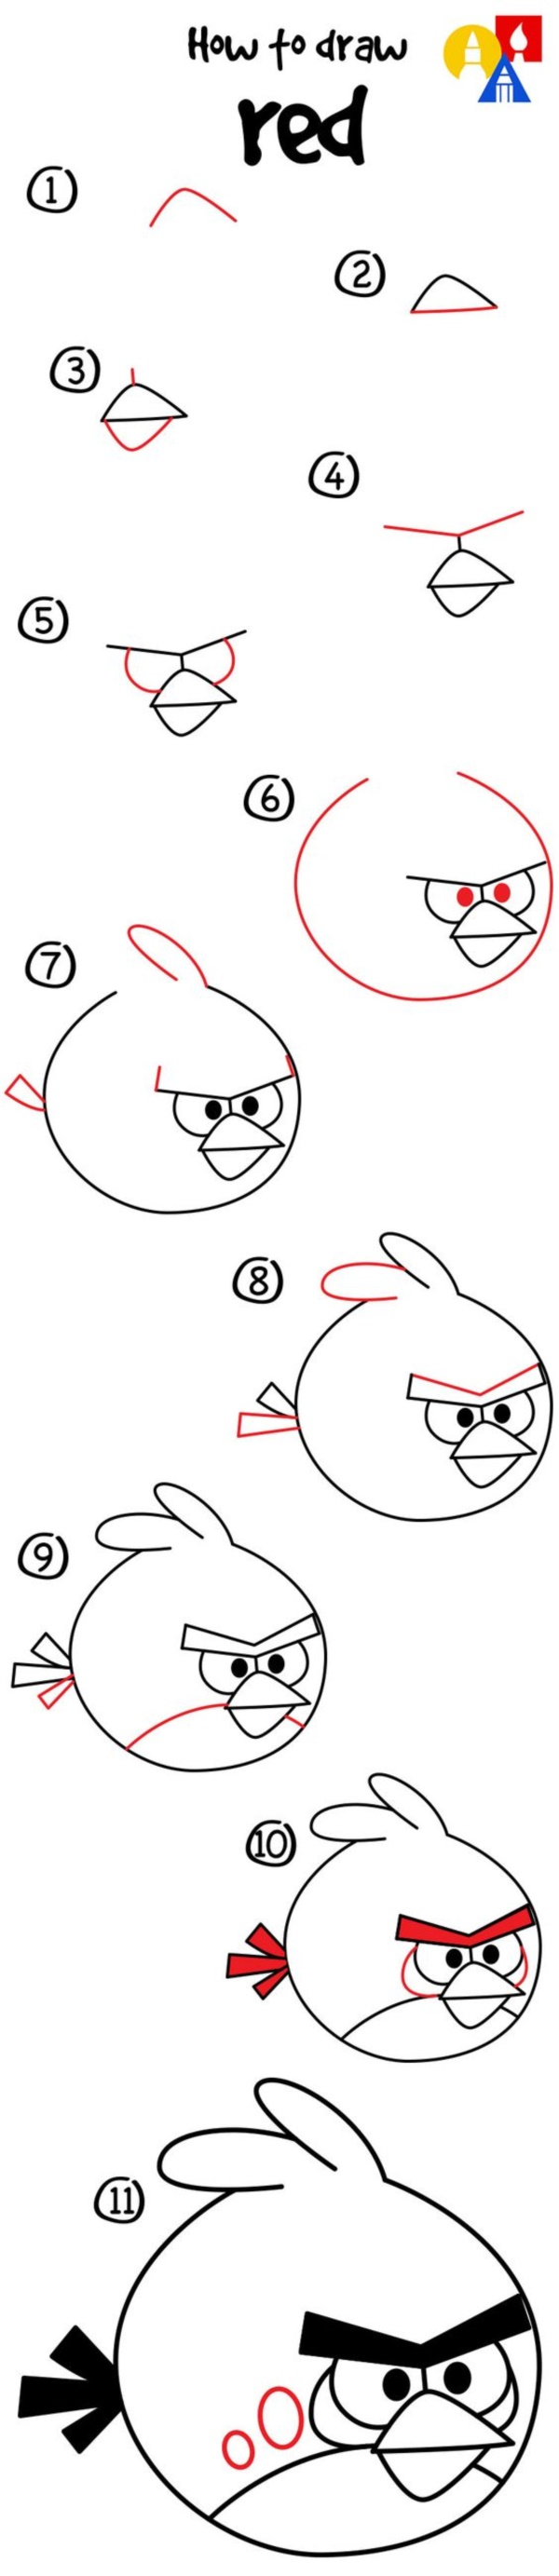 how-to-draw-doodles0051